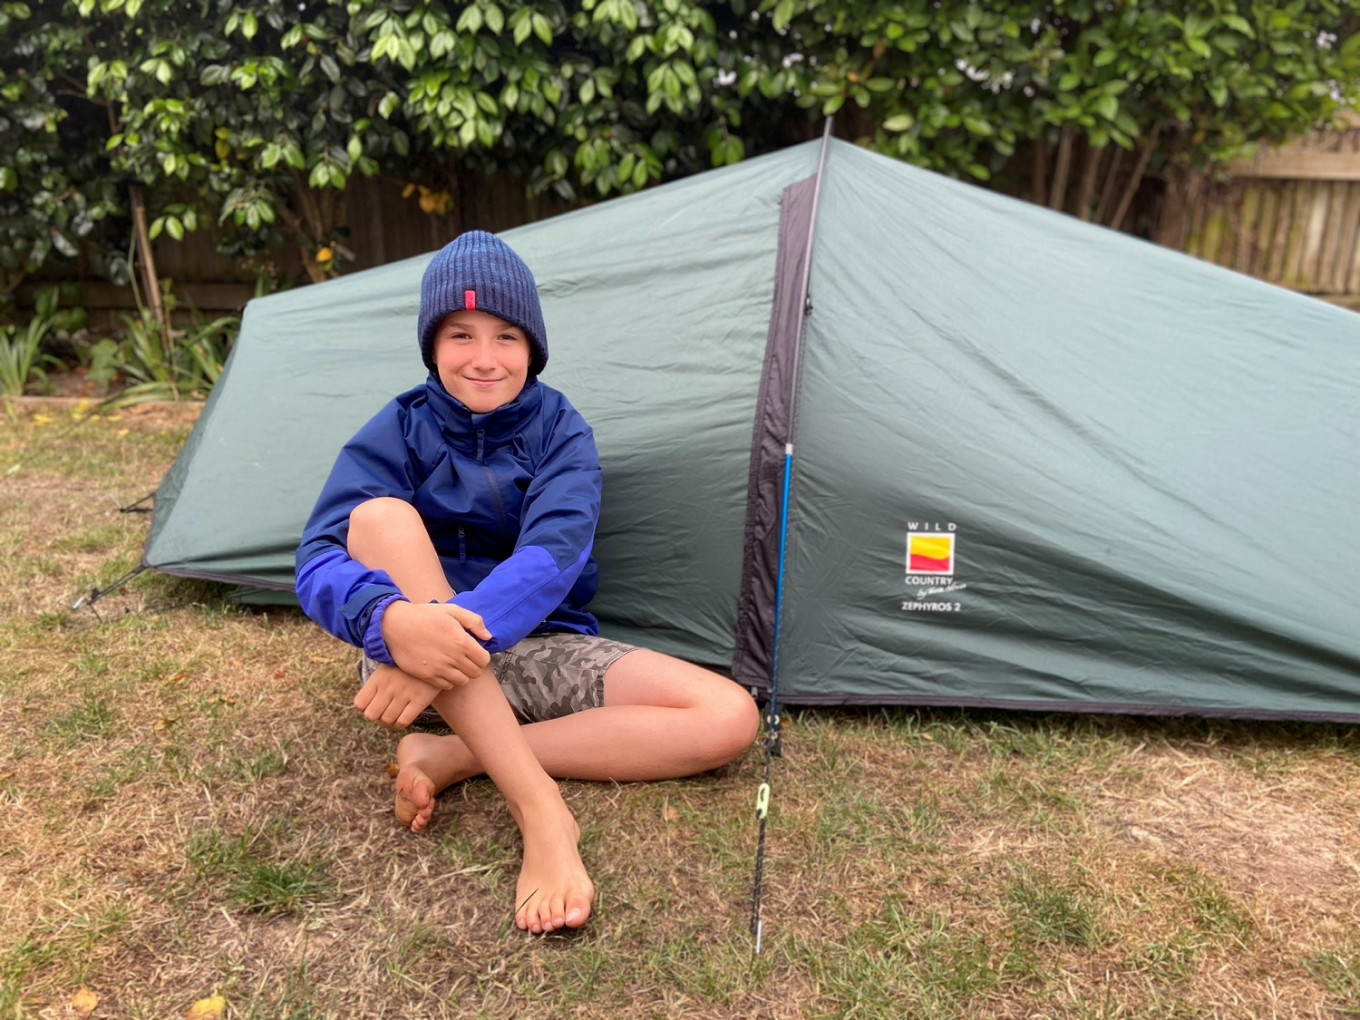 British boy slept for months in garden tent to raise money for hospice